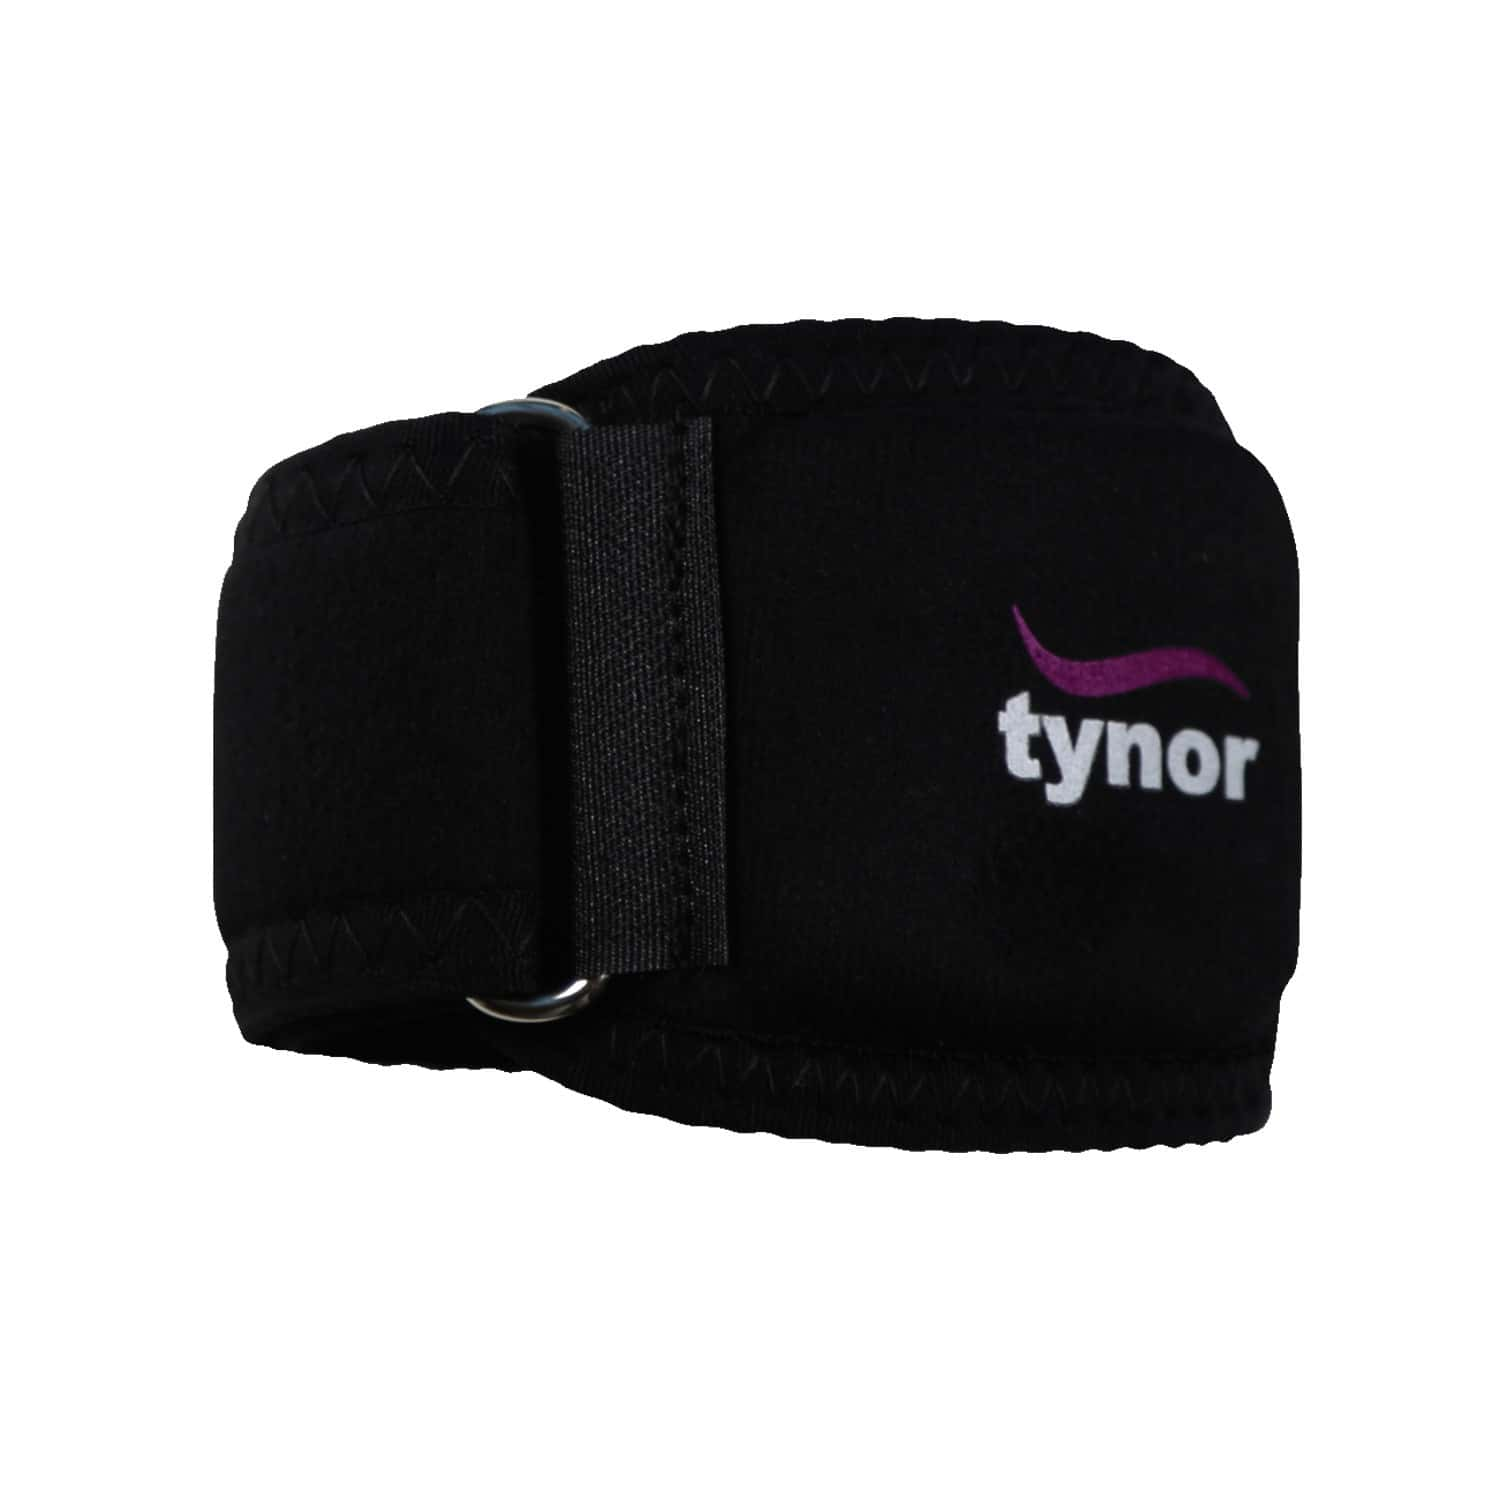 Tynor Tennis Elbow Support ( Pain Relief,forearm,elbow) - Small